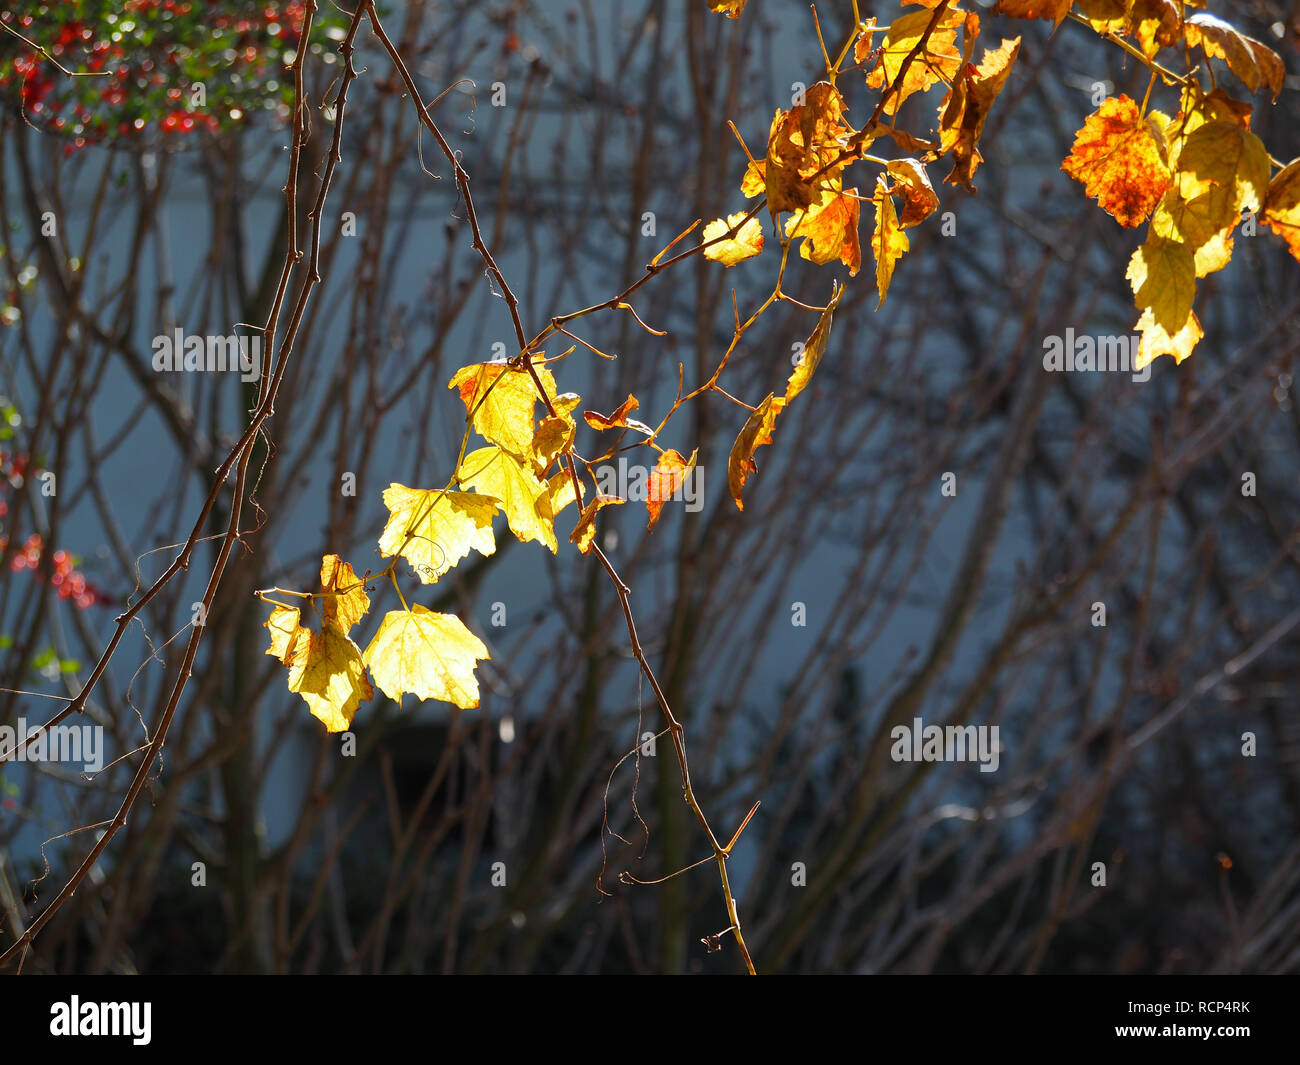 Yellow maple leaves left on the vines in the Chinese Garden at Huntington Library - Stock Image